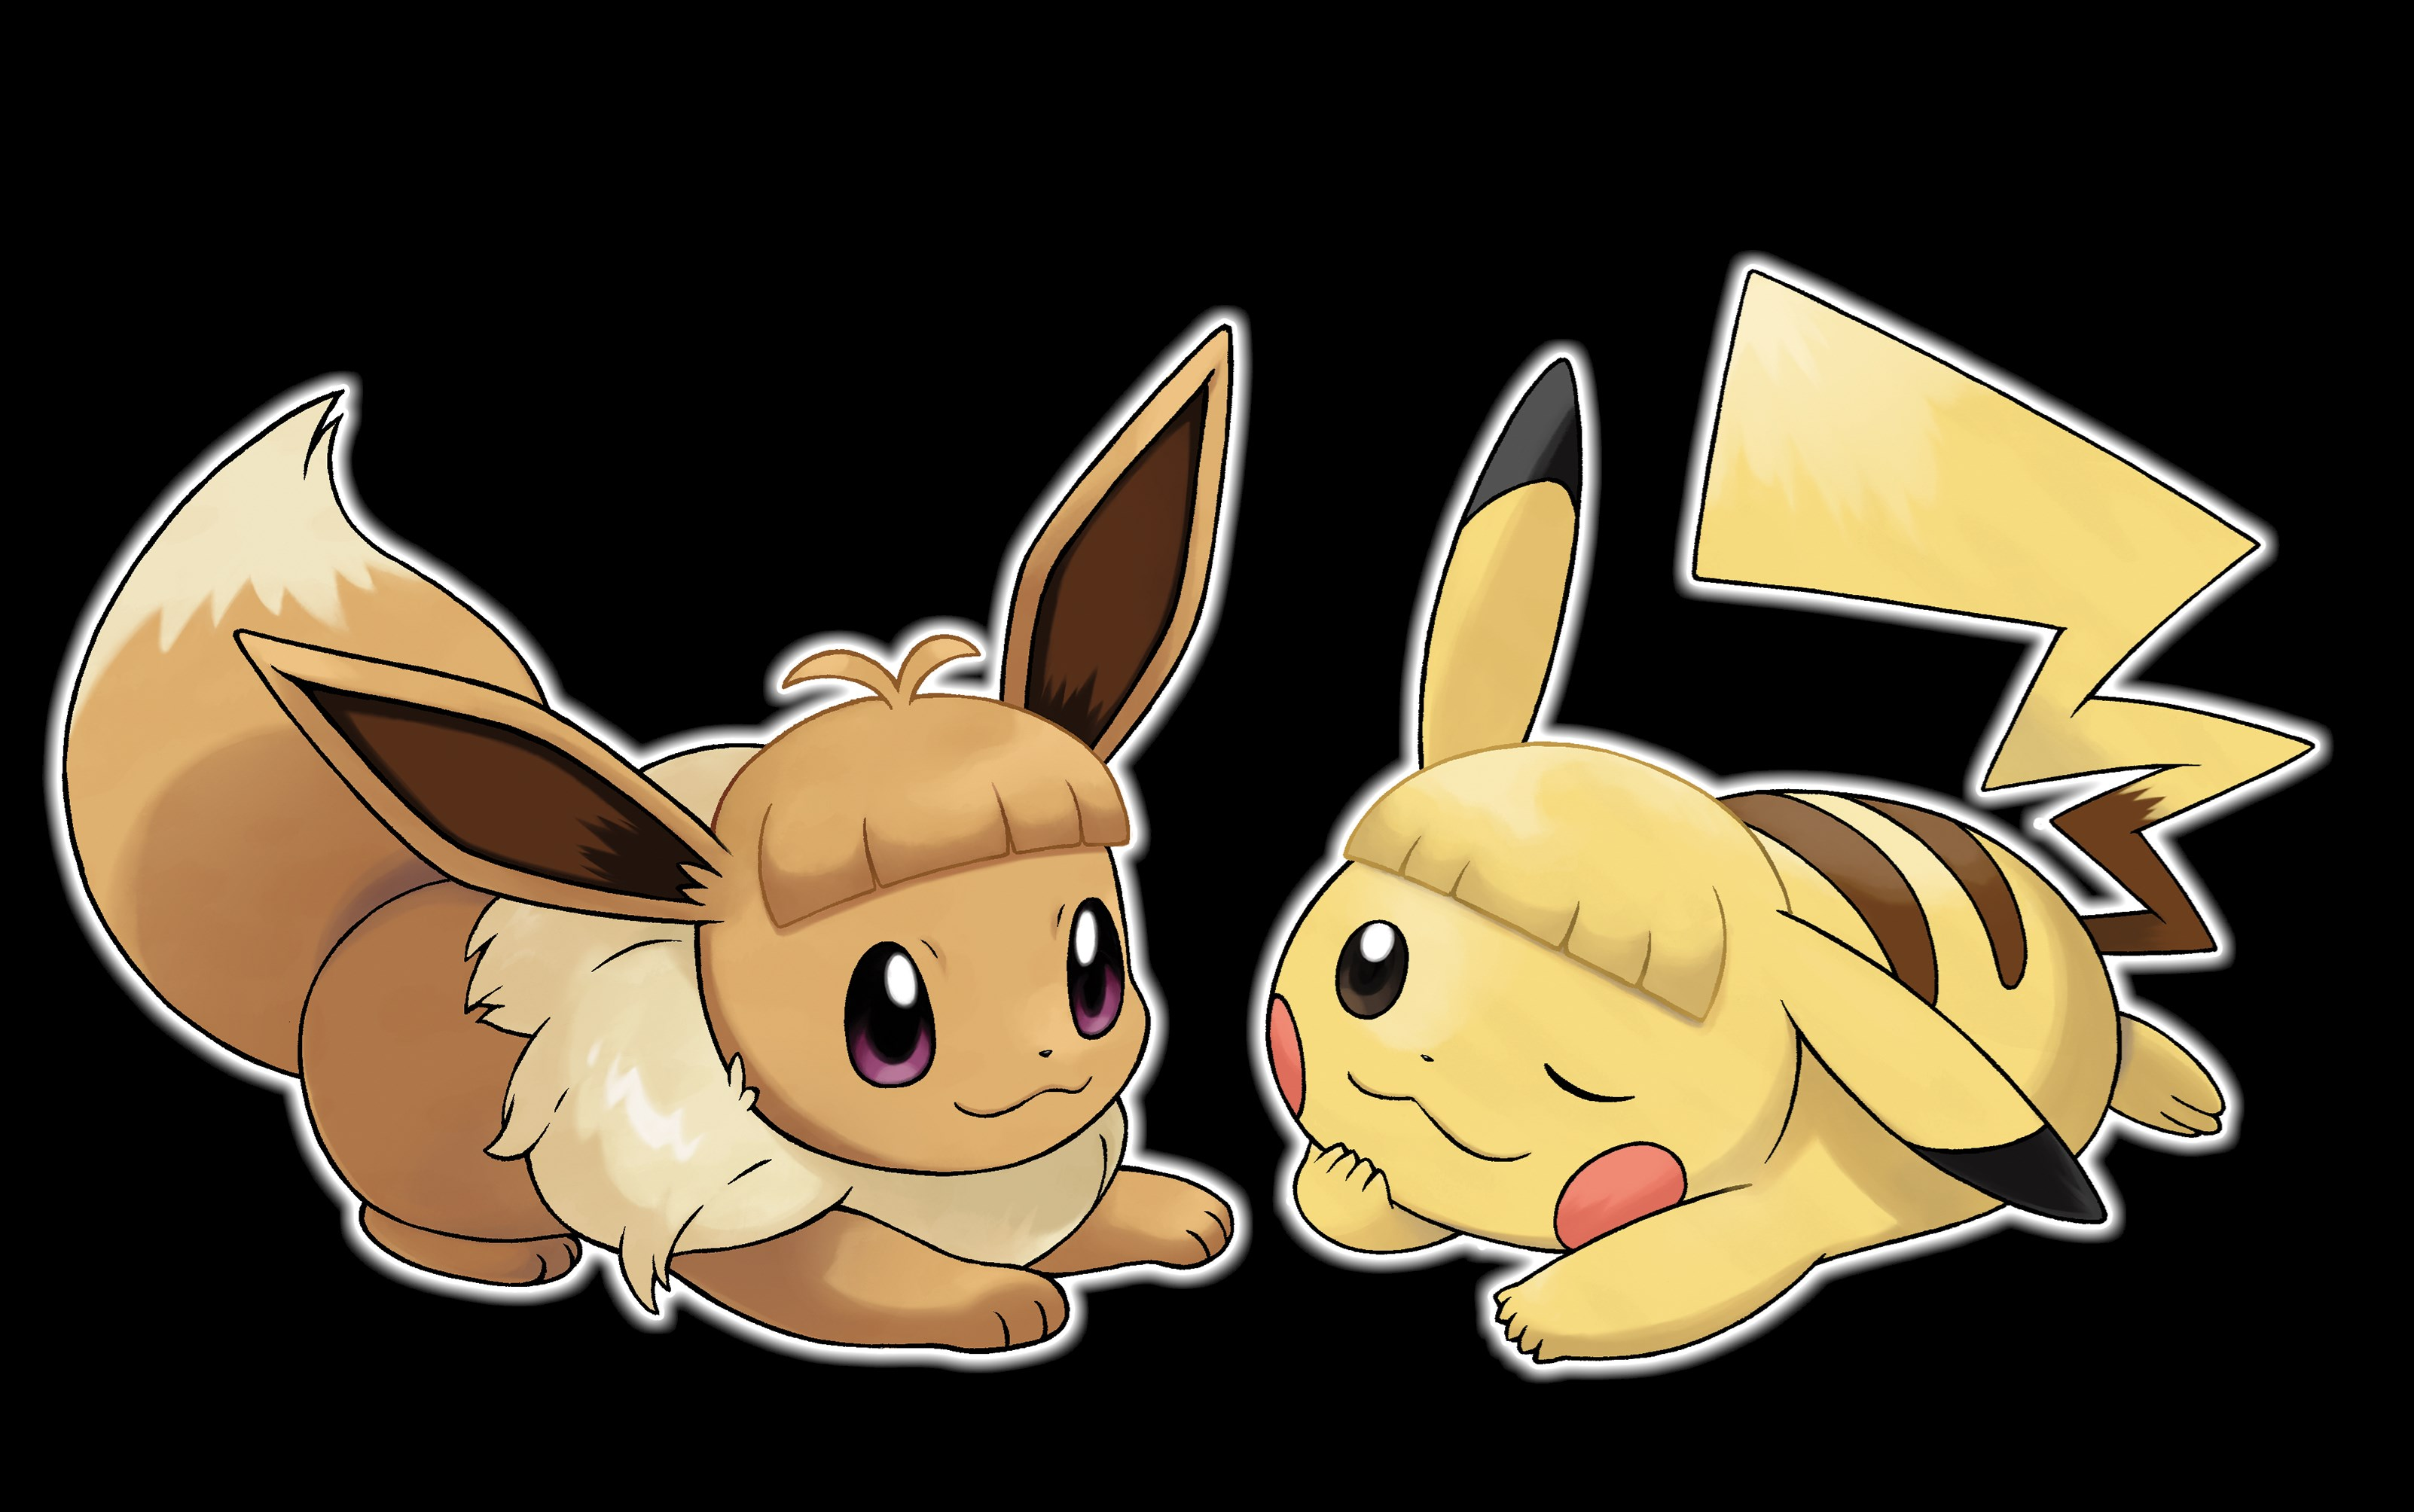 Hair Style Eevee: New Information Revealed For Pokemon: Let's Go, Pikachu